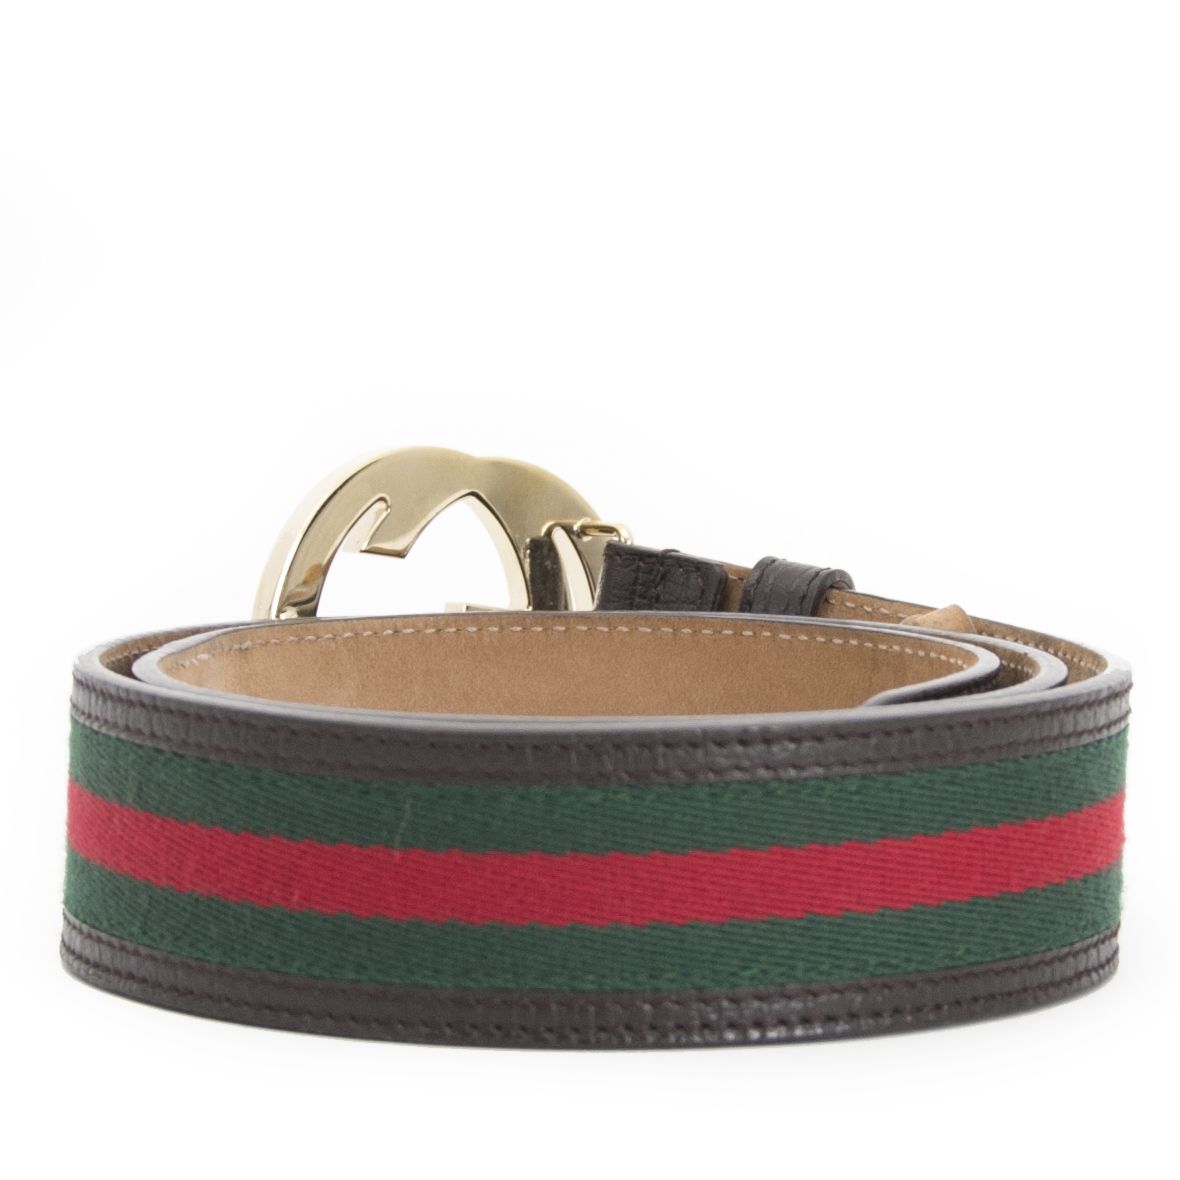 Are you looking for Gucci Red Green Belt - size 85